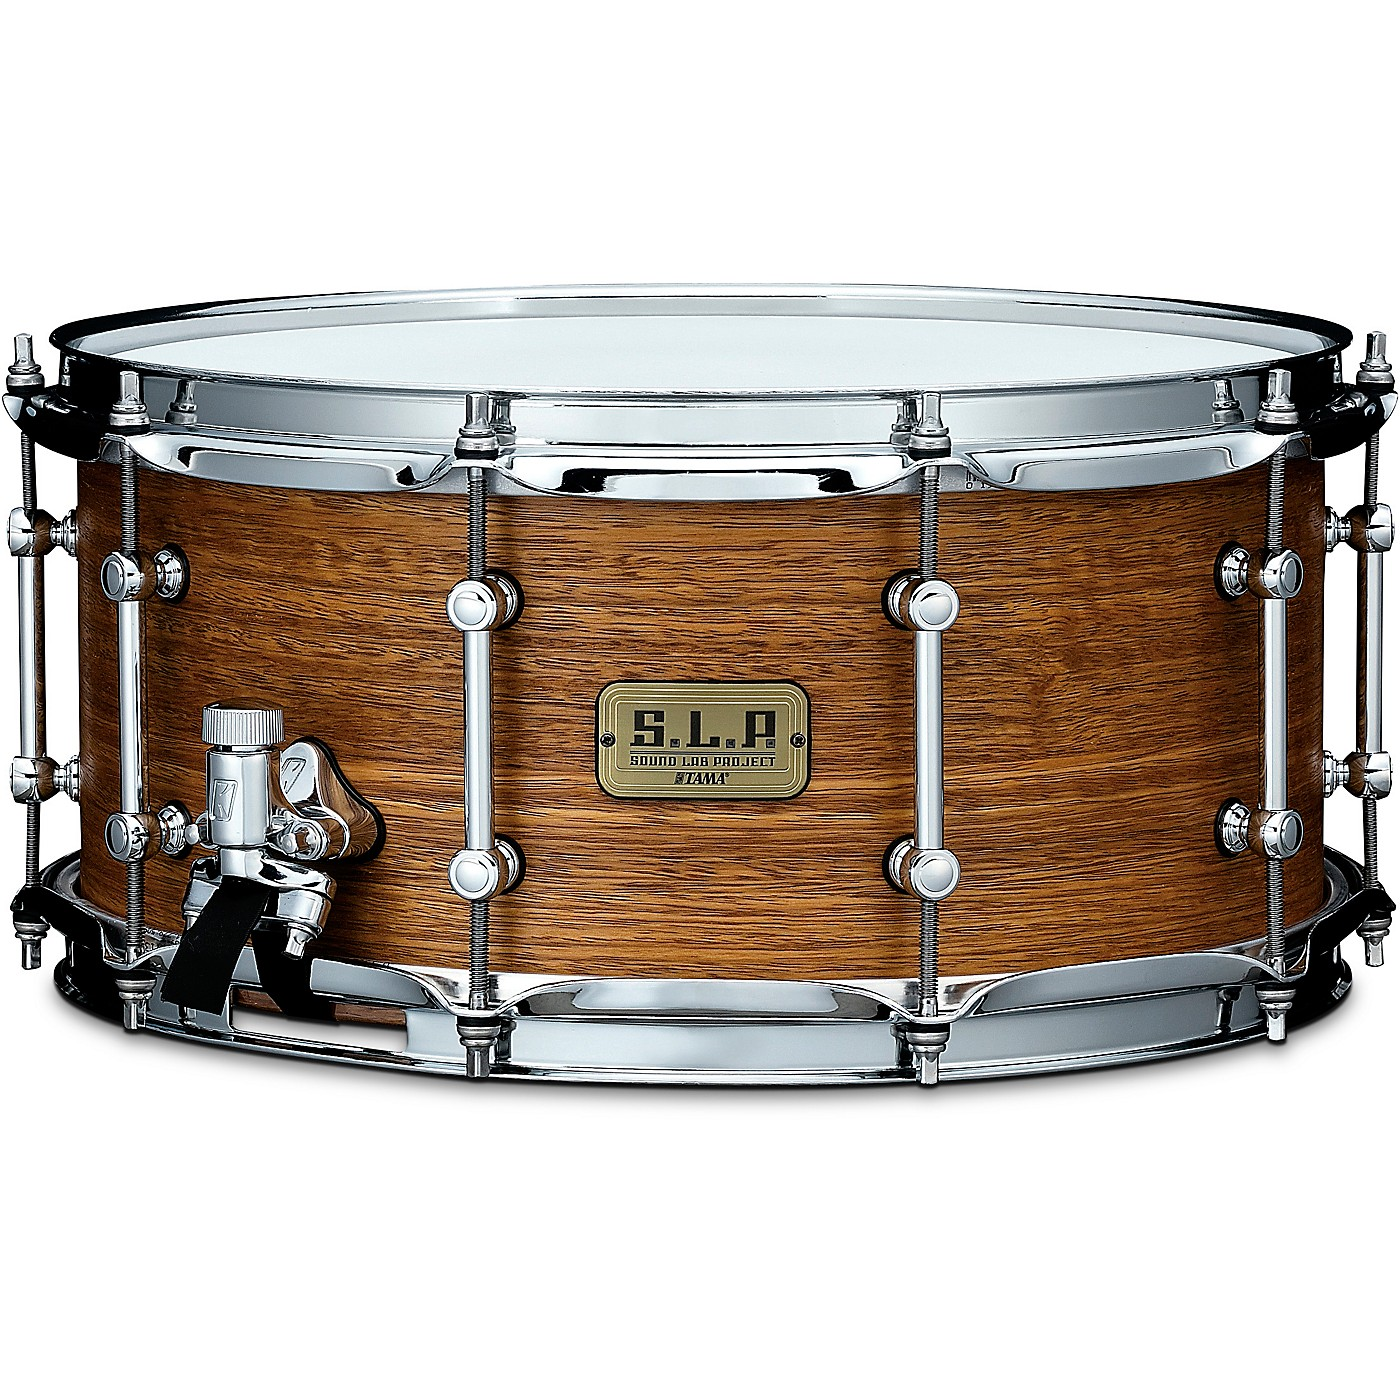 TAMA S.L.P. Bold Spotted Gum Snare Drum thumbnail